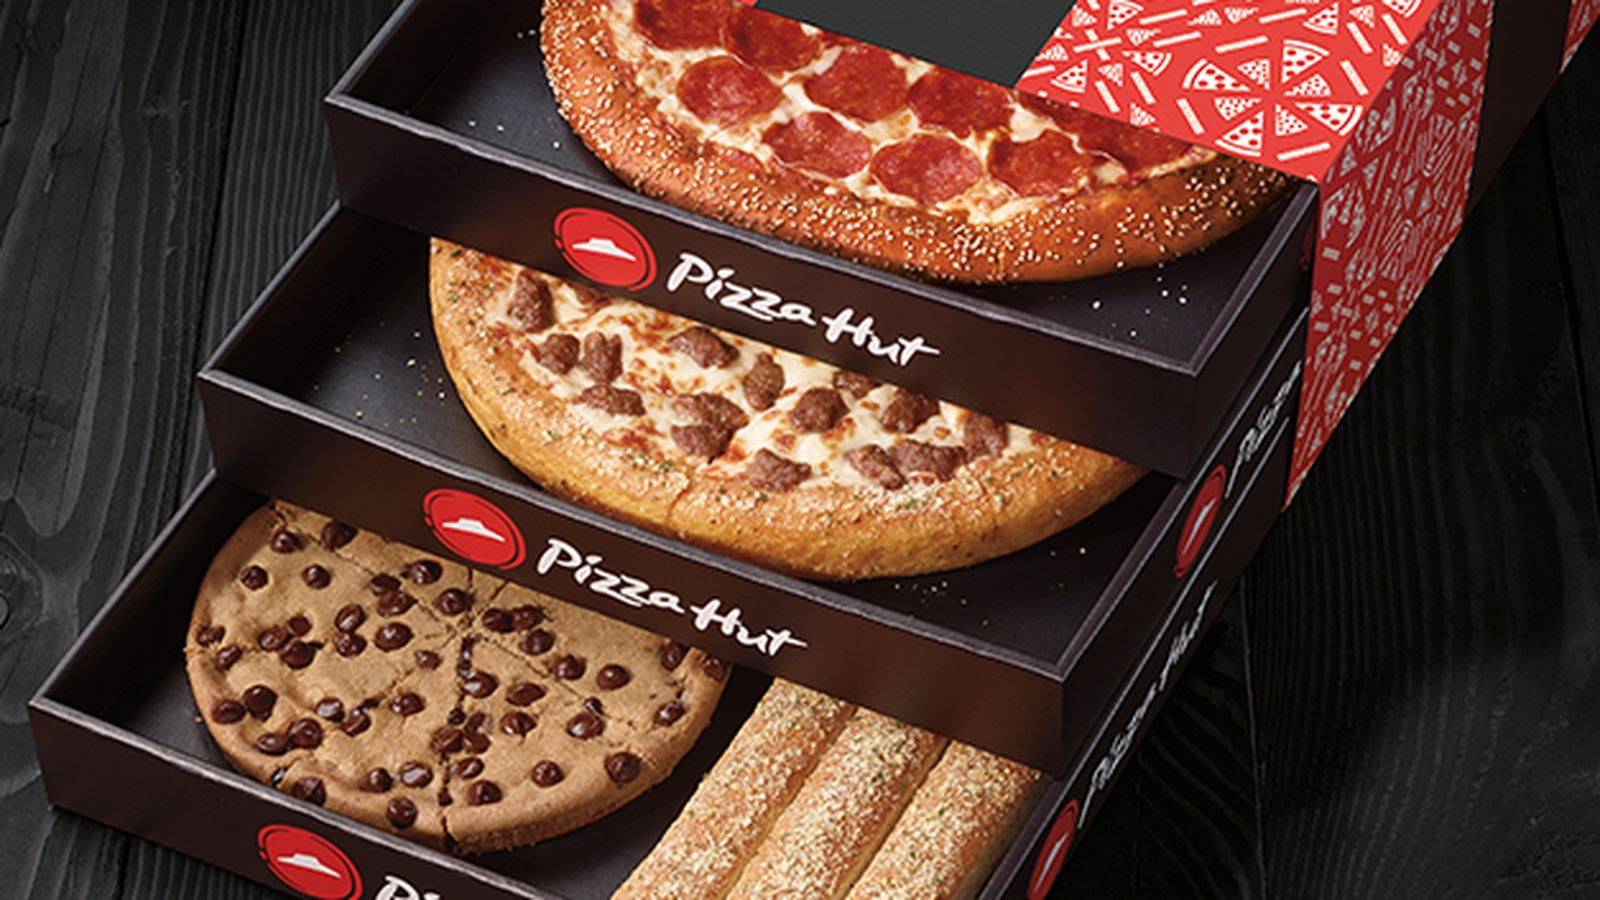 Image result for pizza hut nz